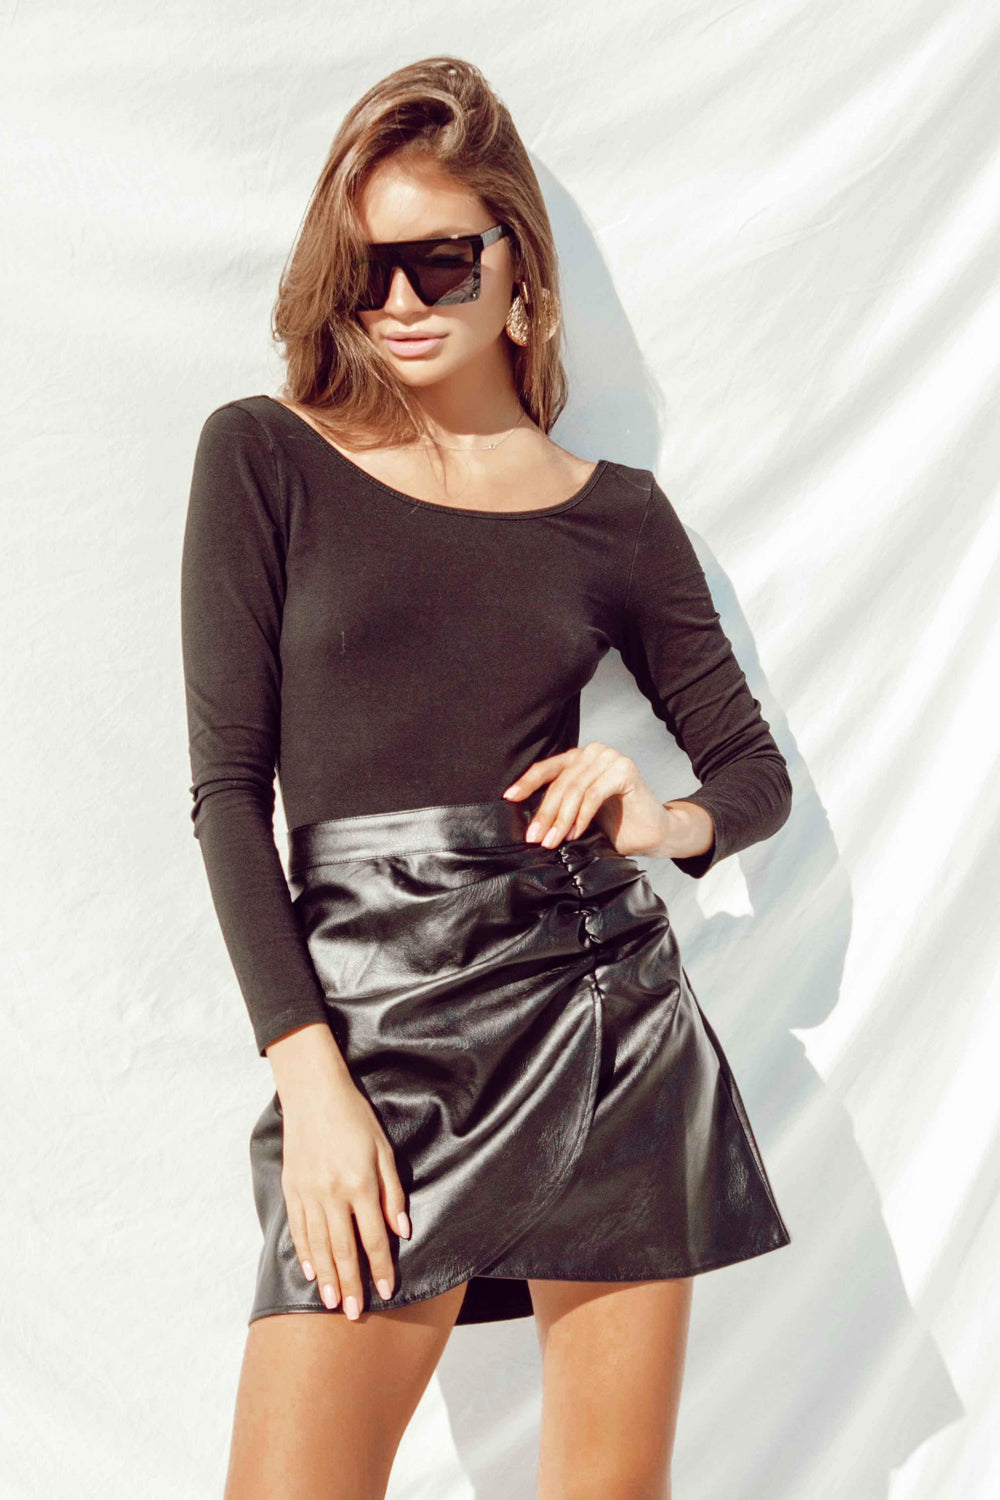 FERN SKIRT - Chic Le Frique